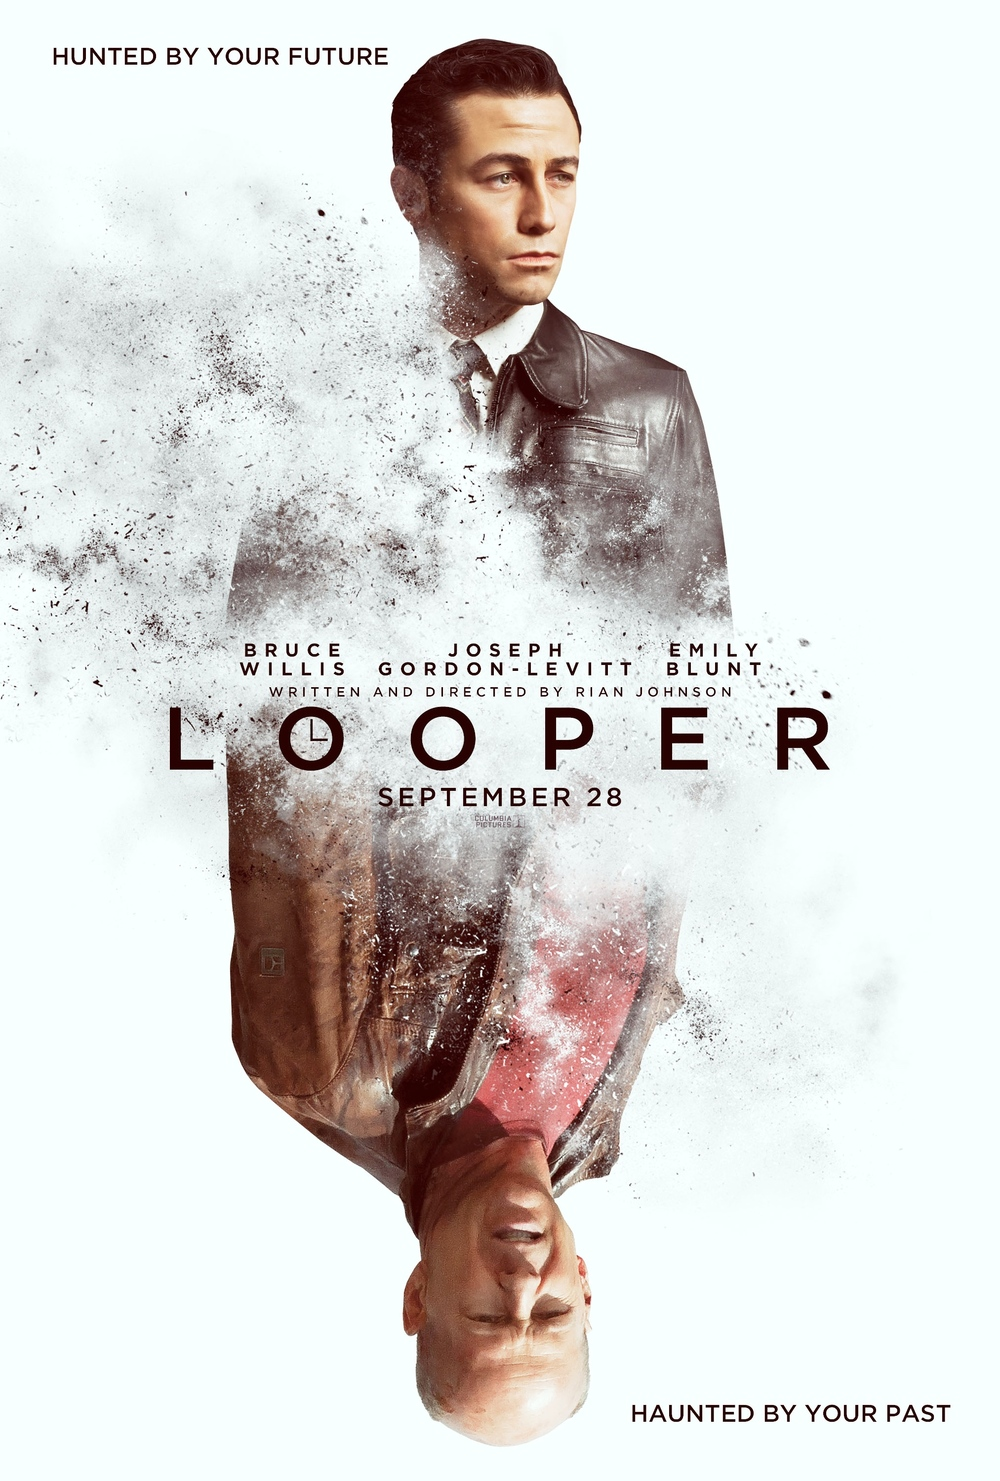 Magik*Magik teams up with composer  NATHAN JOHNSON  to perform and record the original film score for  LOOPER , directed by Rian Johnson and starring Bruce Willis & Joseph Gordon-Levitt.